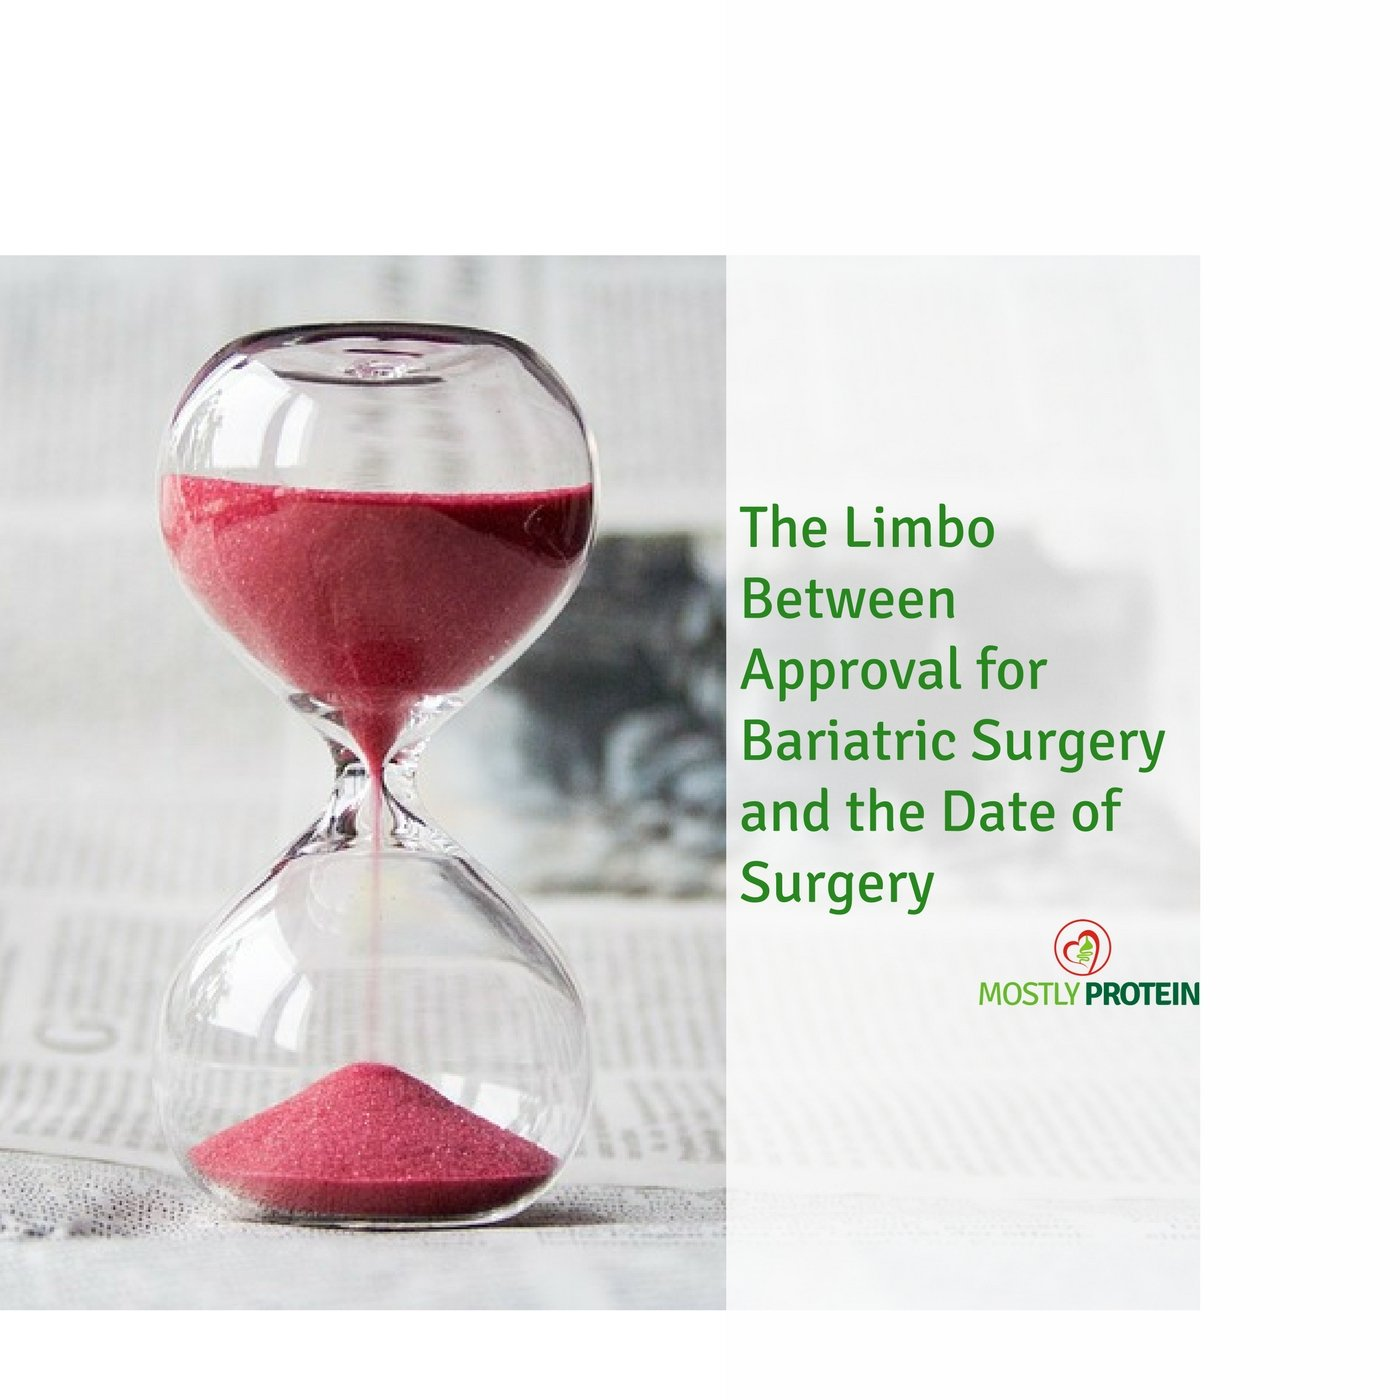 The Limbo Between Approval for Bariatric Surgery and the Day of Surgery